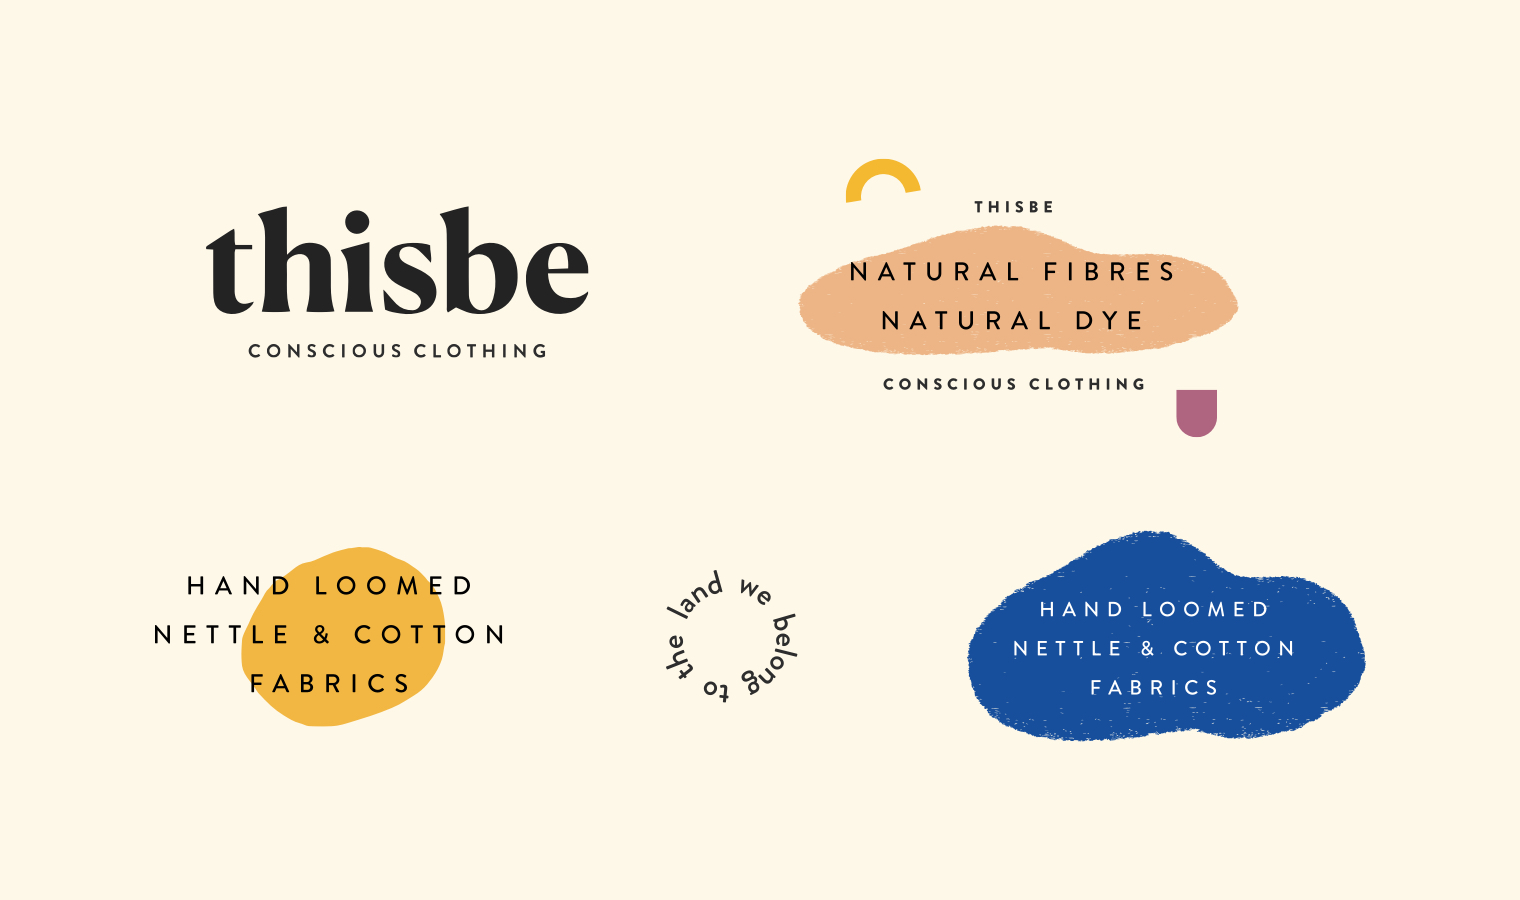 Colourful pastel logo design and branding for conscious slow fashion brand thisbe | Betsy & Francis | Ethical Design Agency.jpg